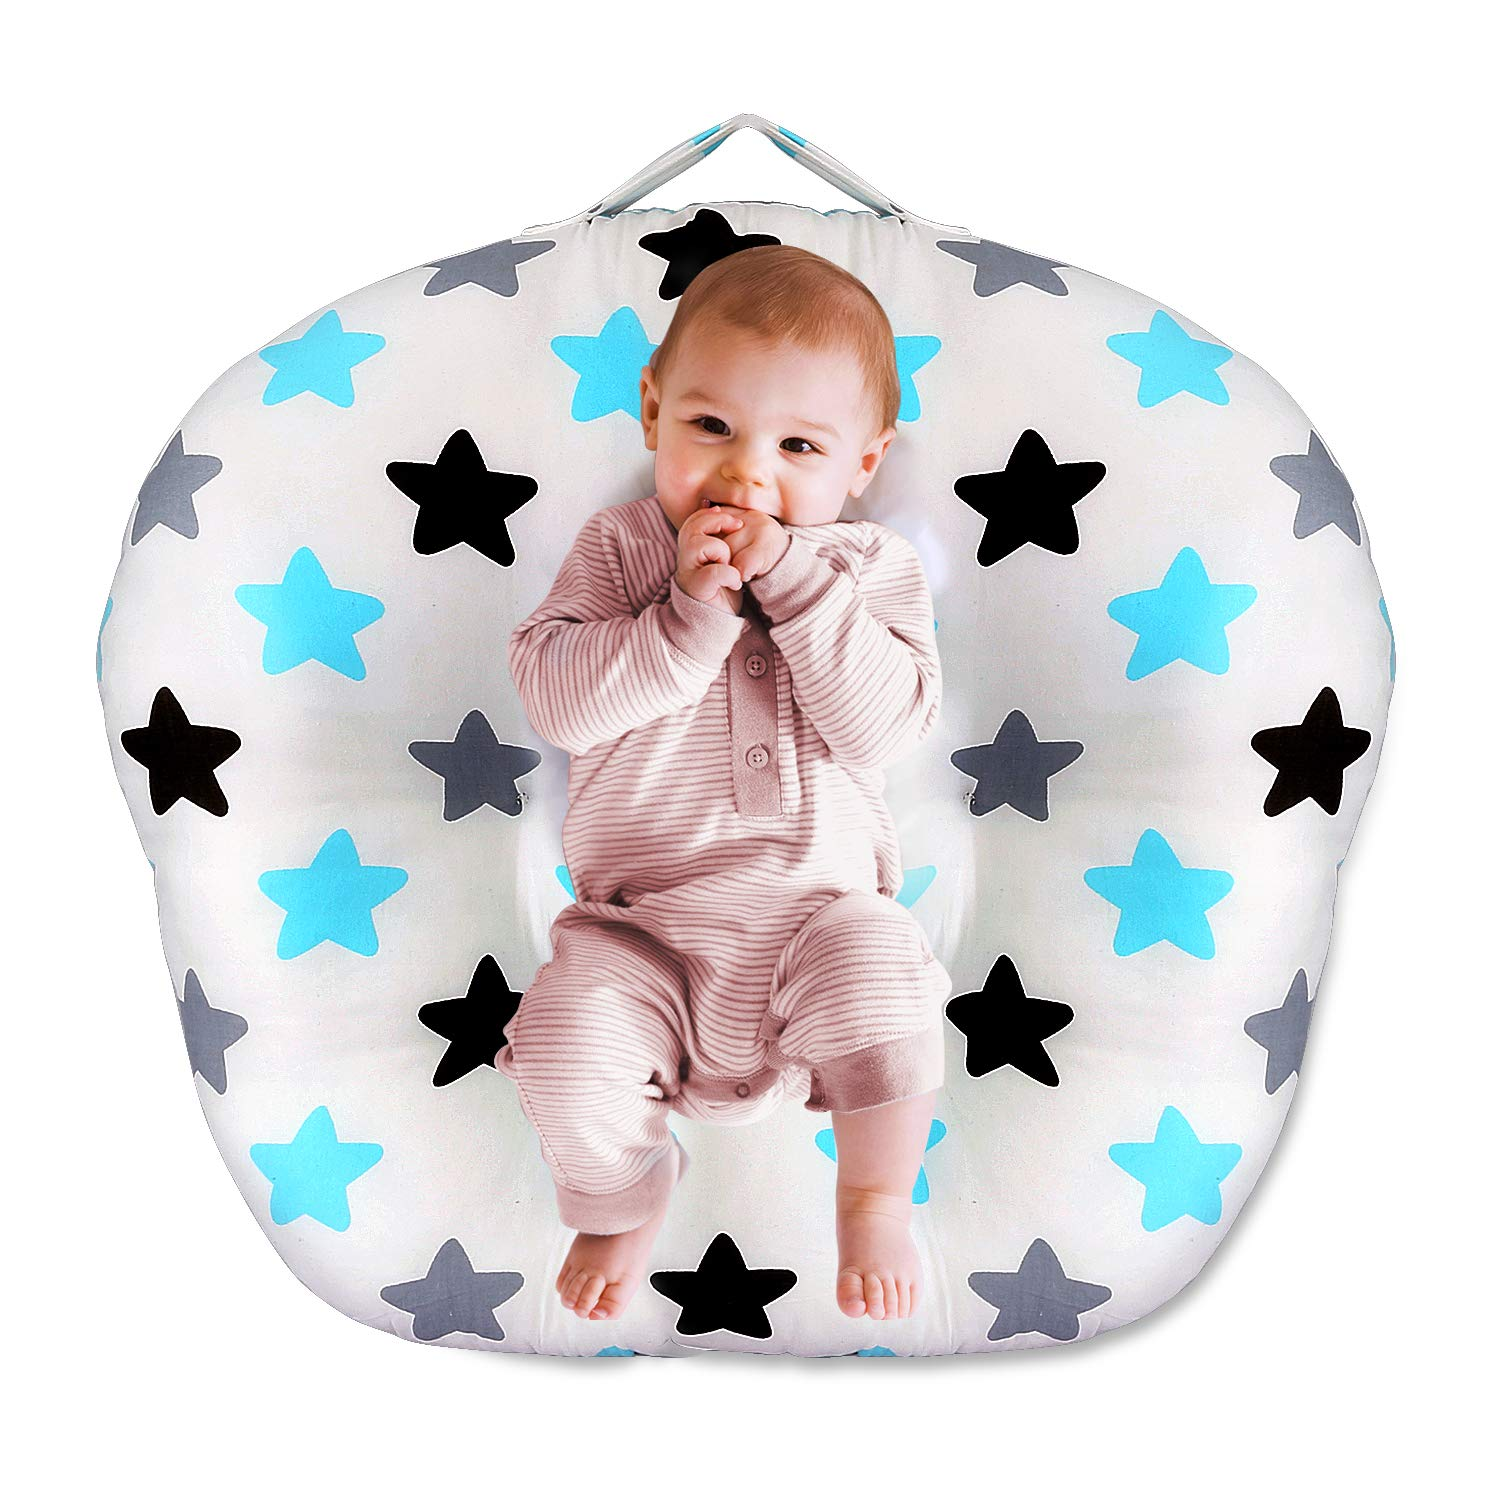 Wooce Newborn Lounger,Baby Lounger and Portable Crib, Little Stars